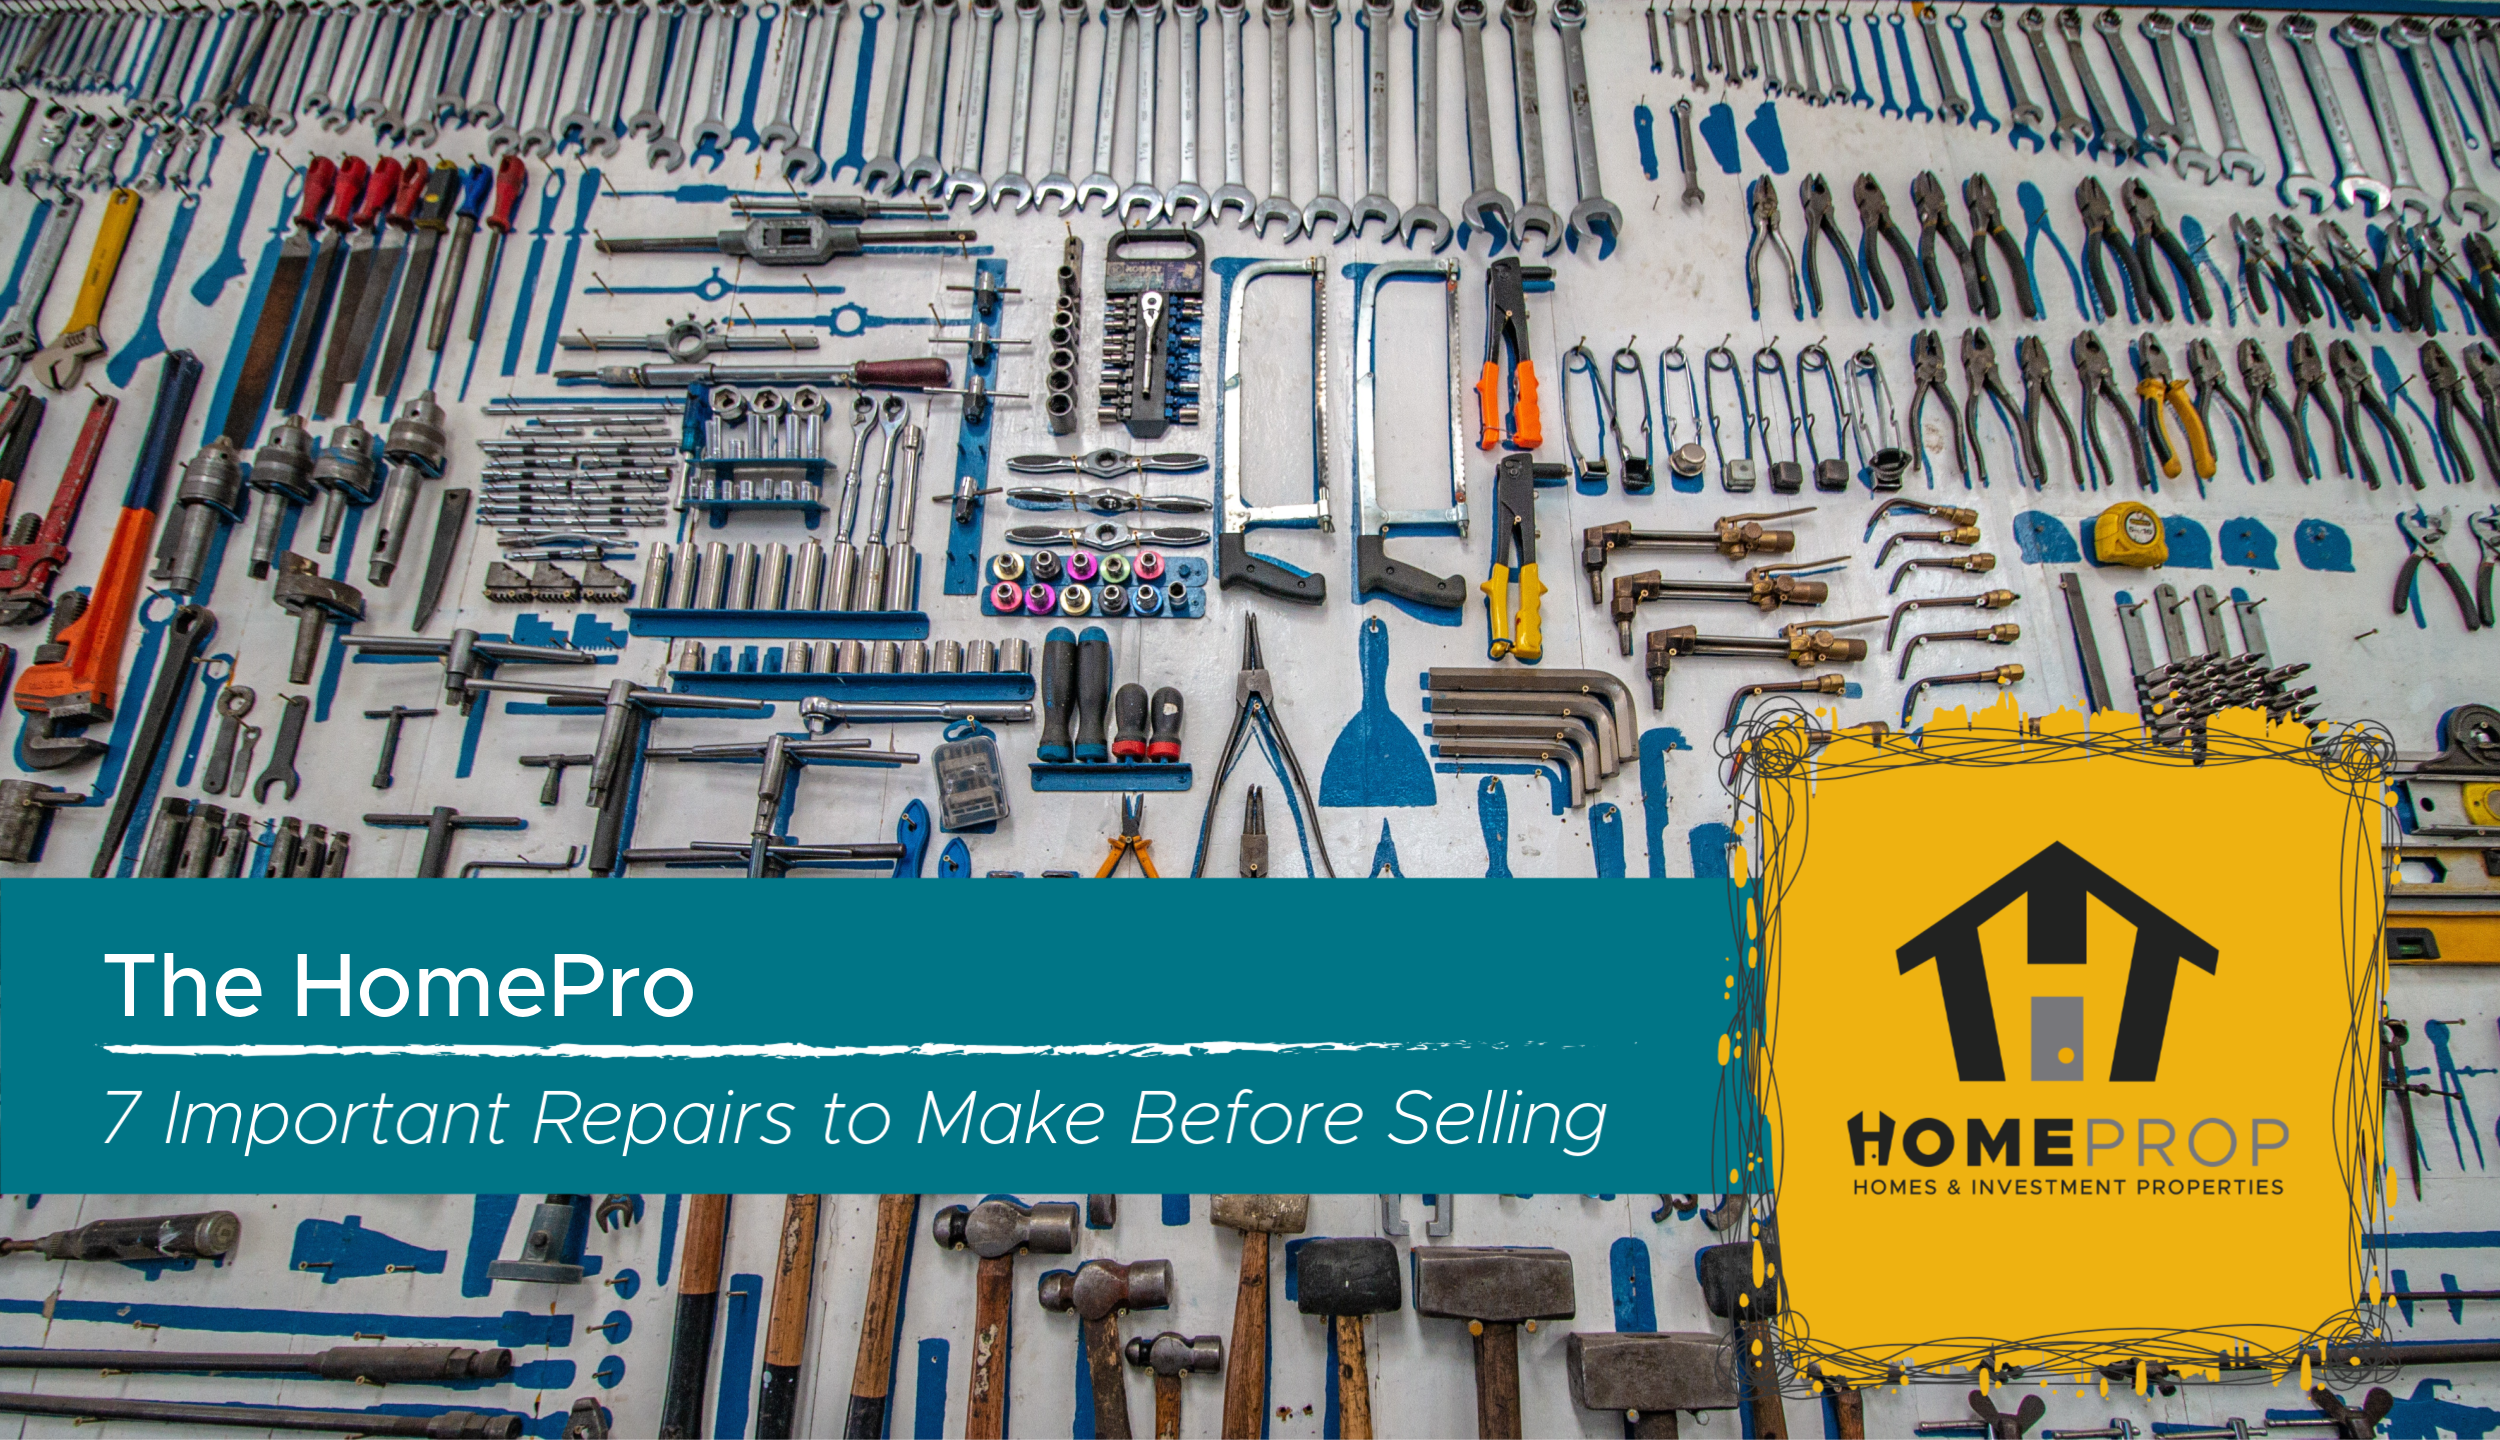 7 Important Repairs to Make Before Selling A Home